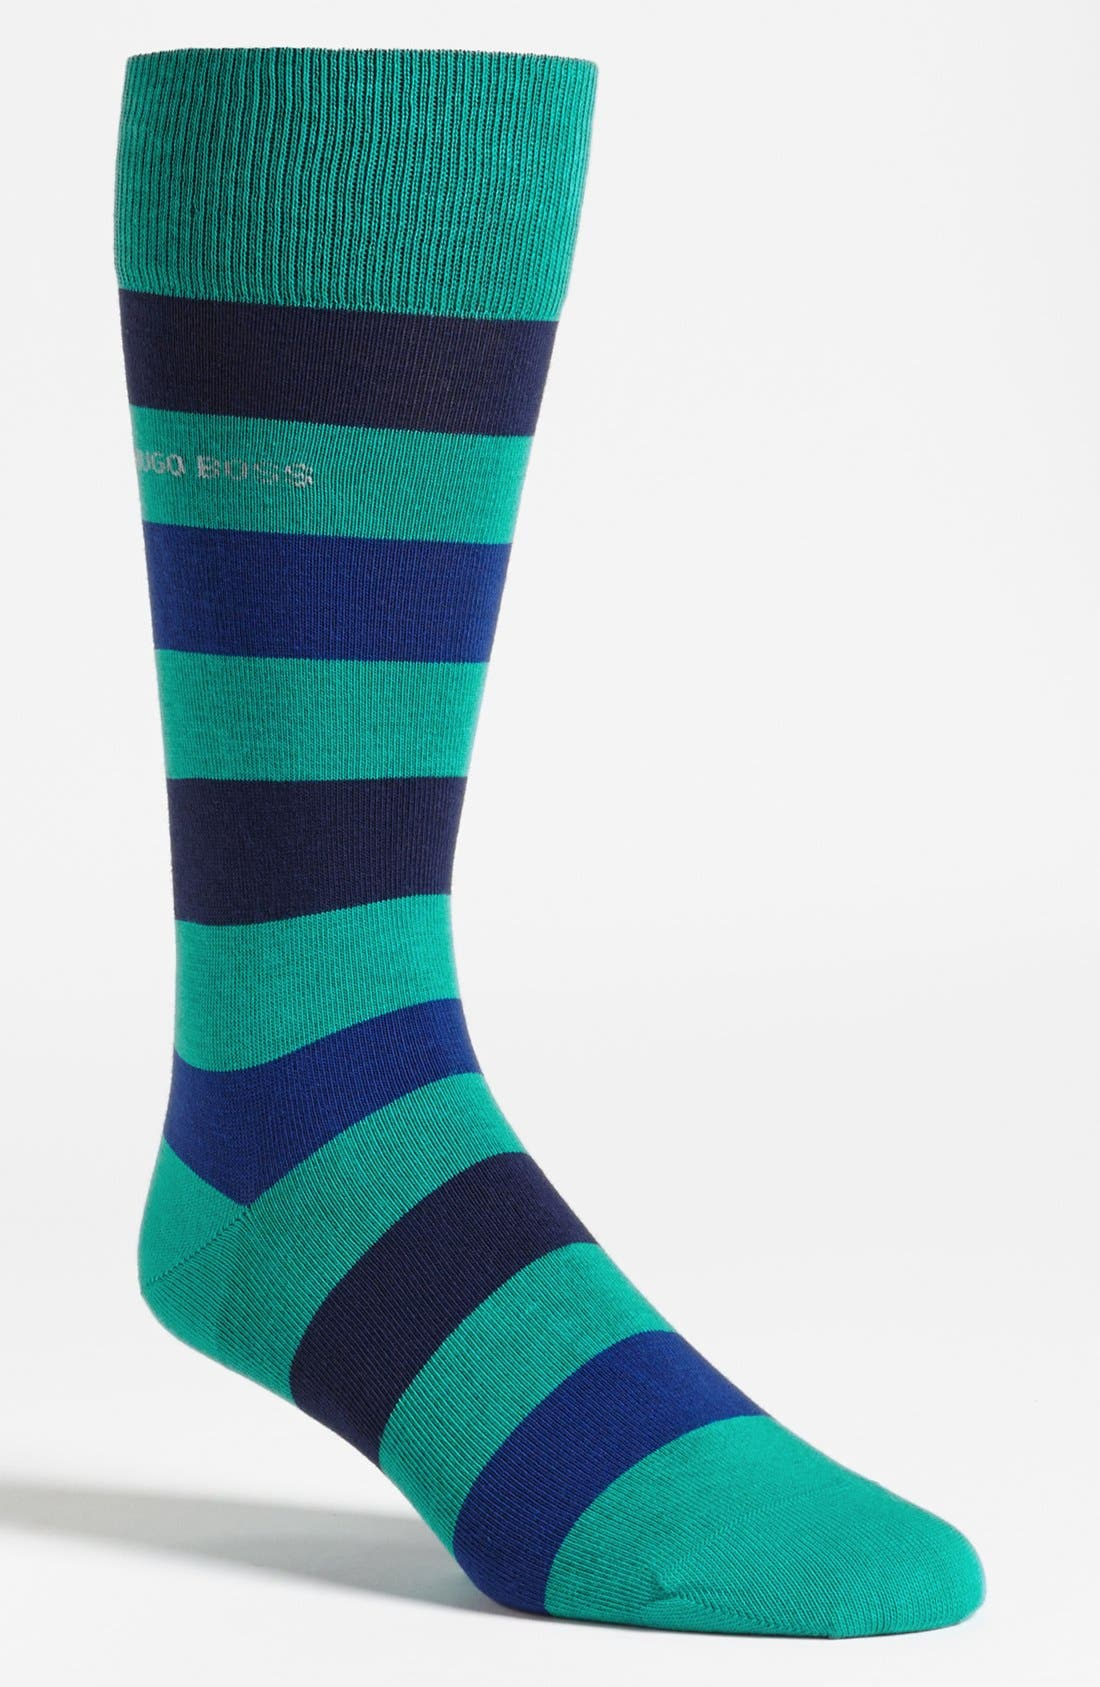 Main Image - BOSS HUGO BOSS 'RS Design' Socks